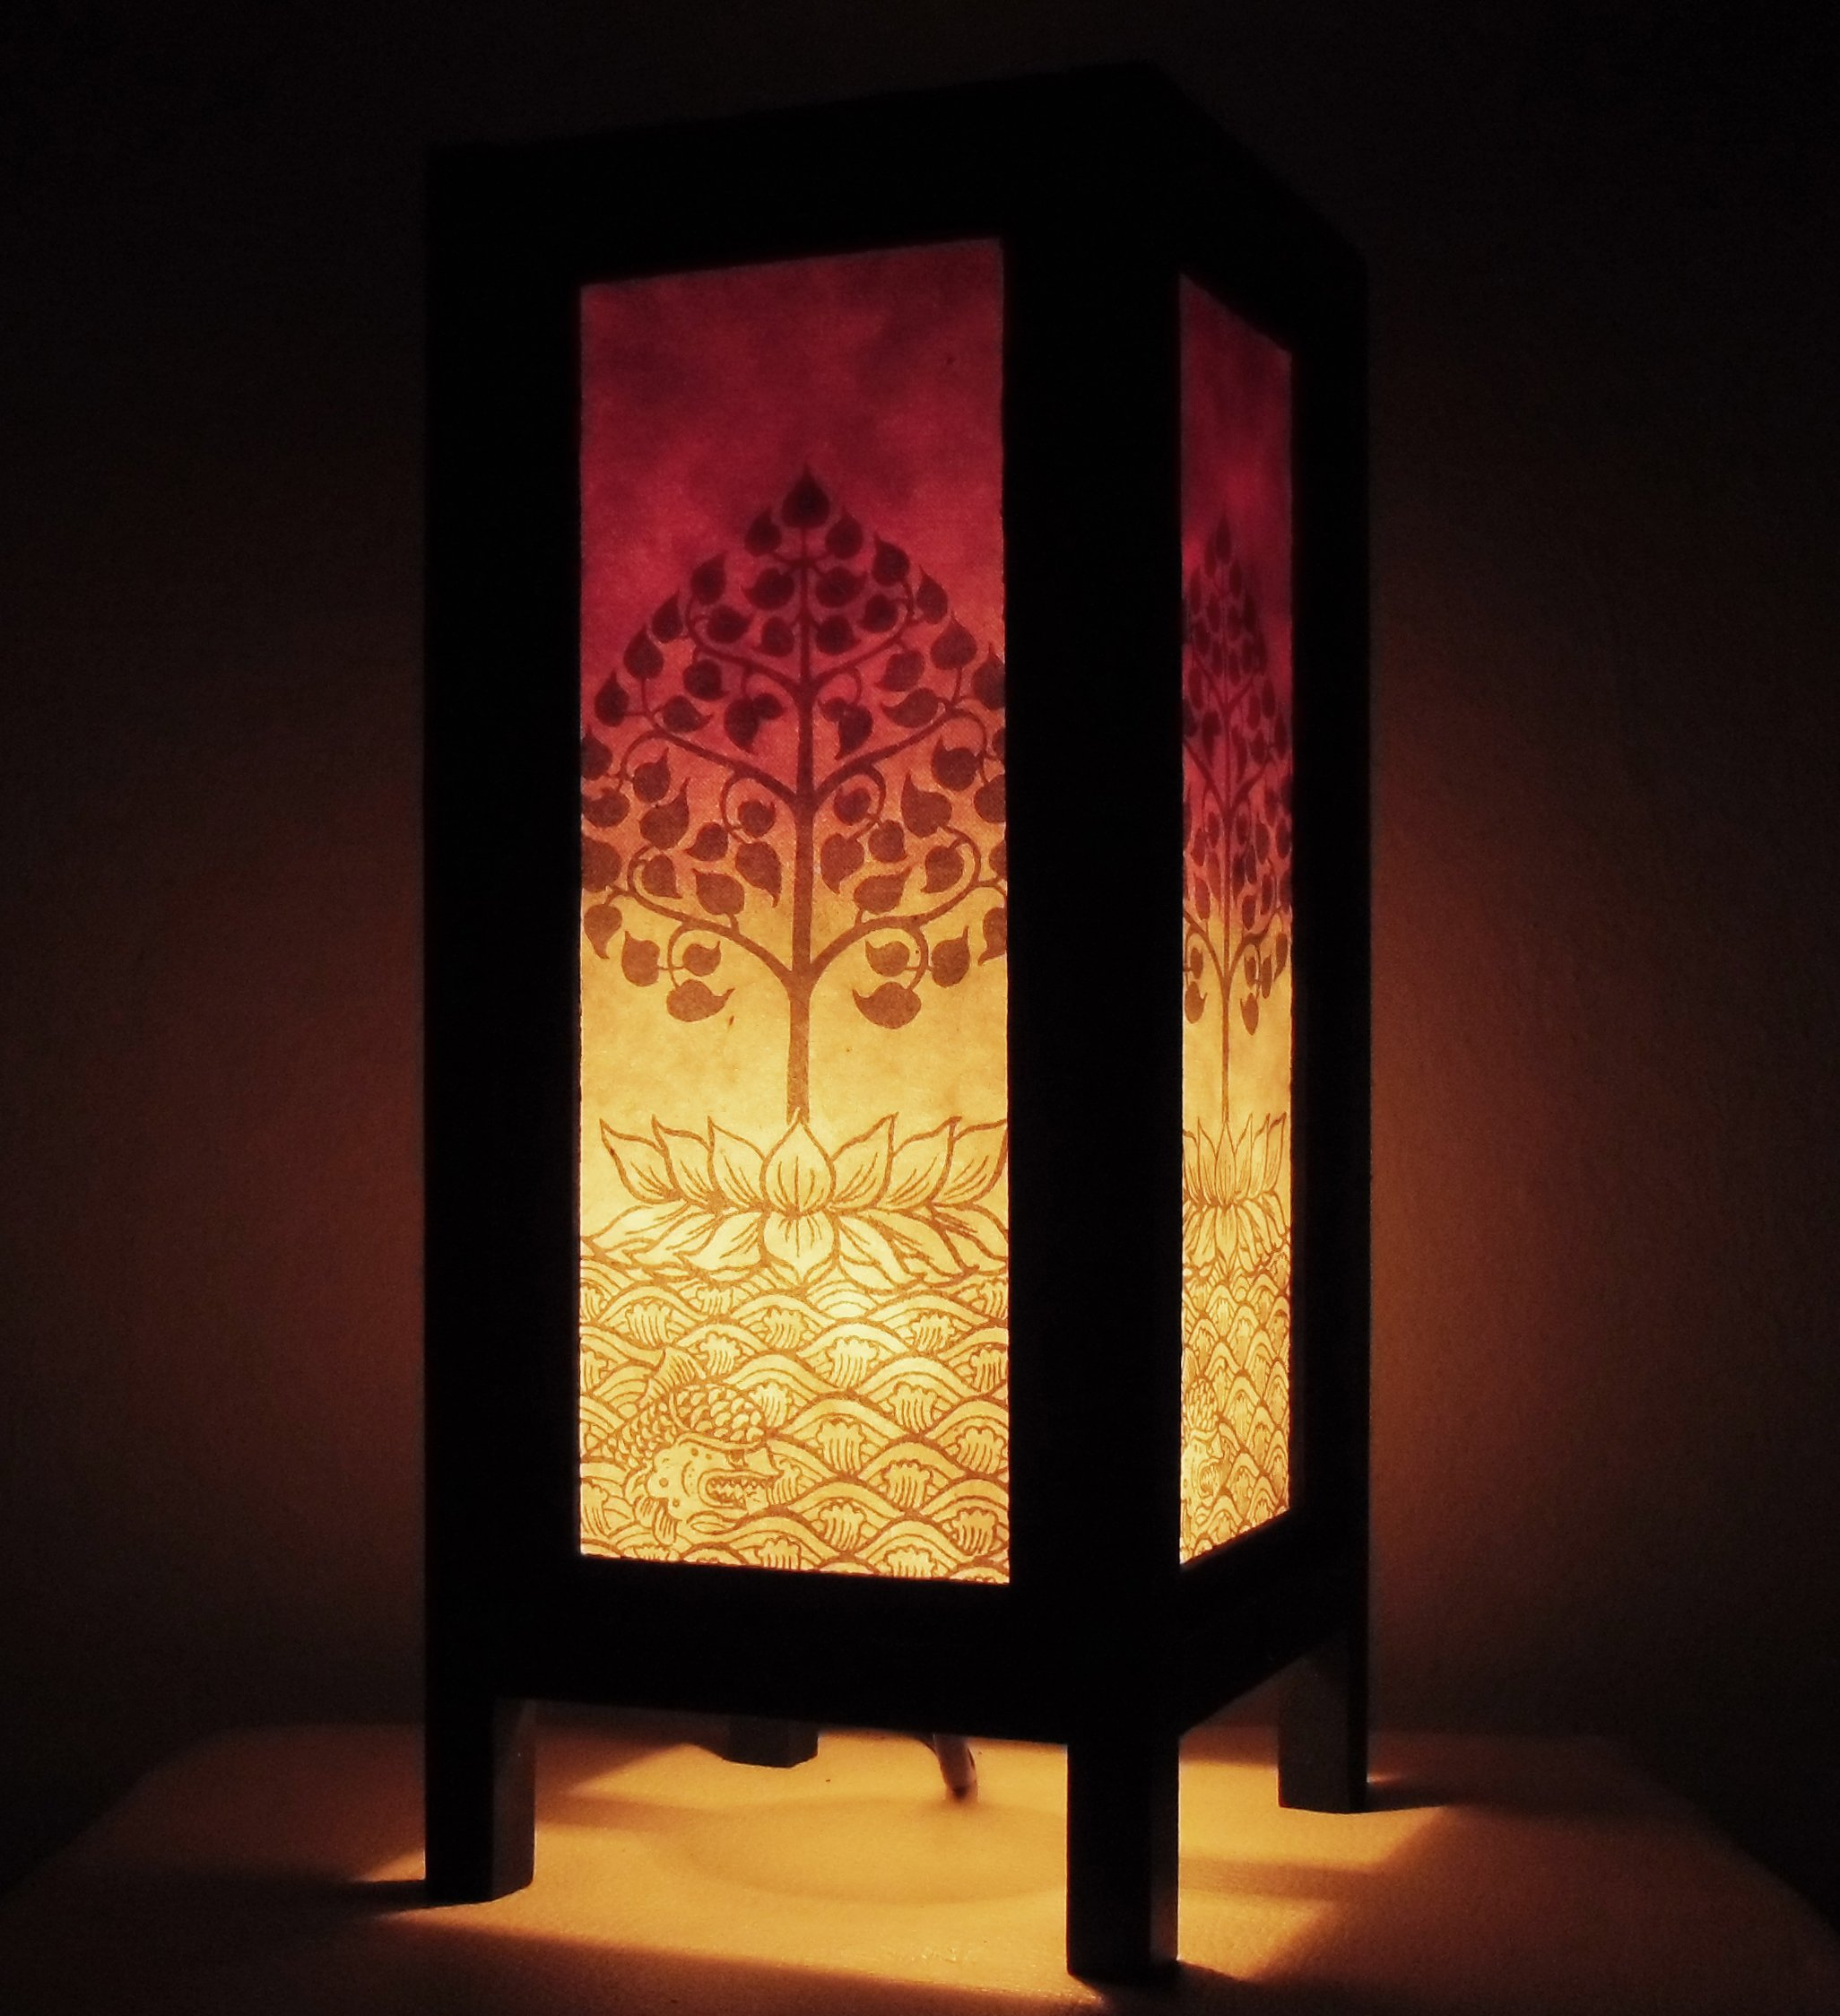 Thai Vintage Handmade ASIAN Oriental Handcraft Thailand Buddha Lotus Peaceful Art Bedside Table Light or Floor Wood Lamp Home Bedroom Decor Modern Design from Thailand by Red berry Thailand Lanna Lamp